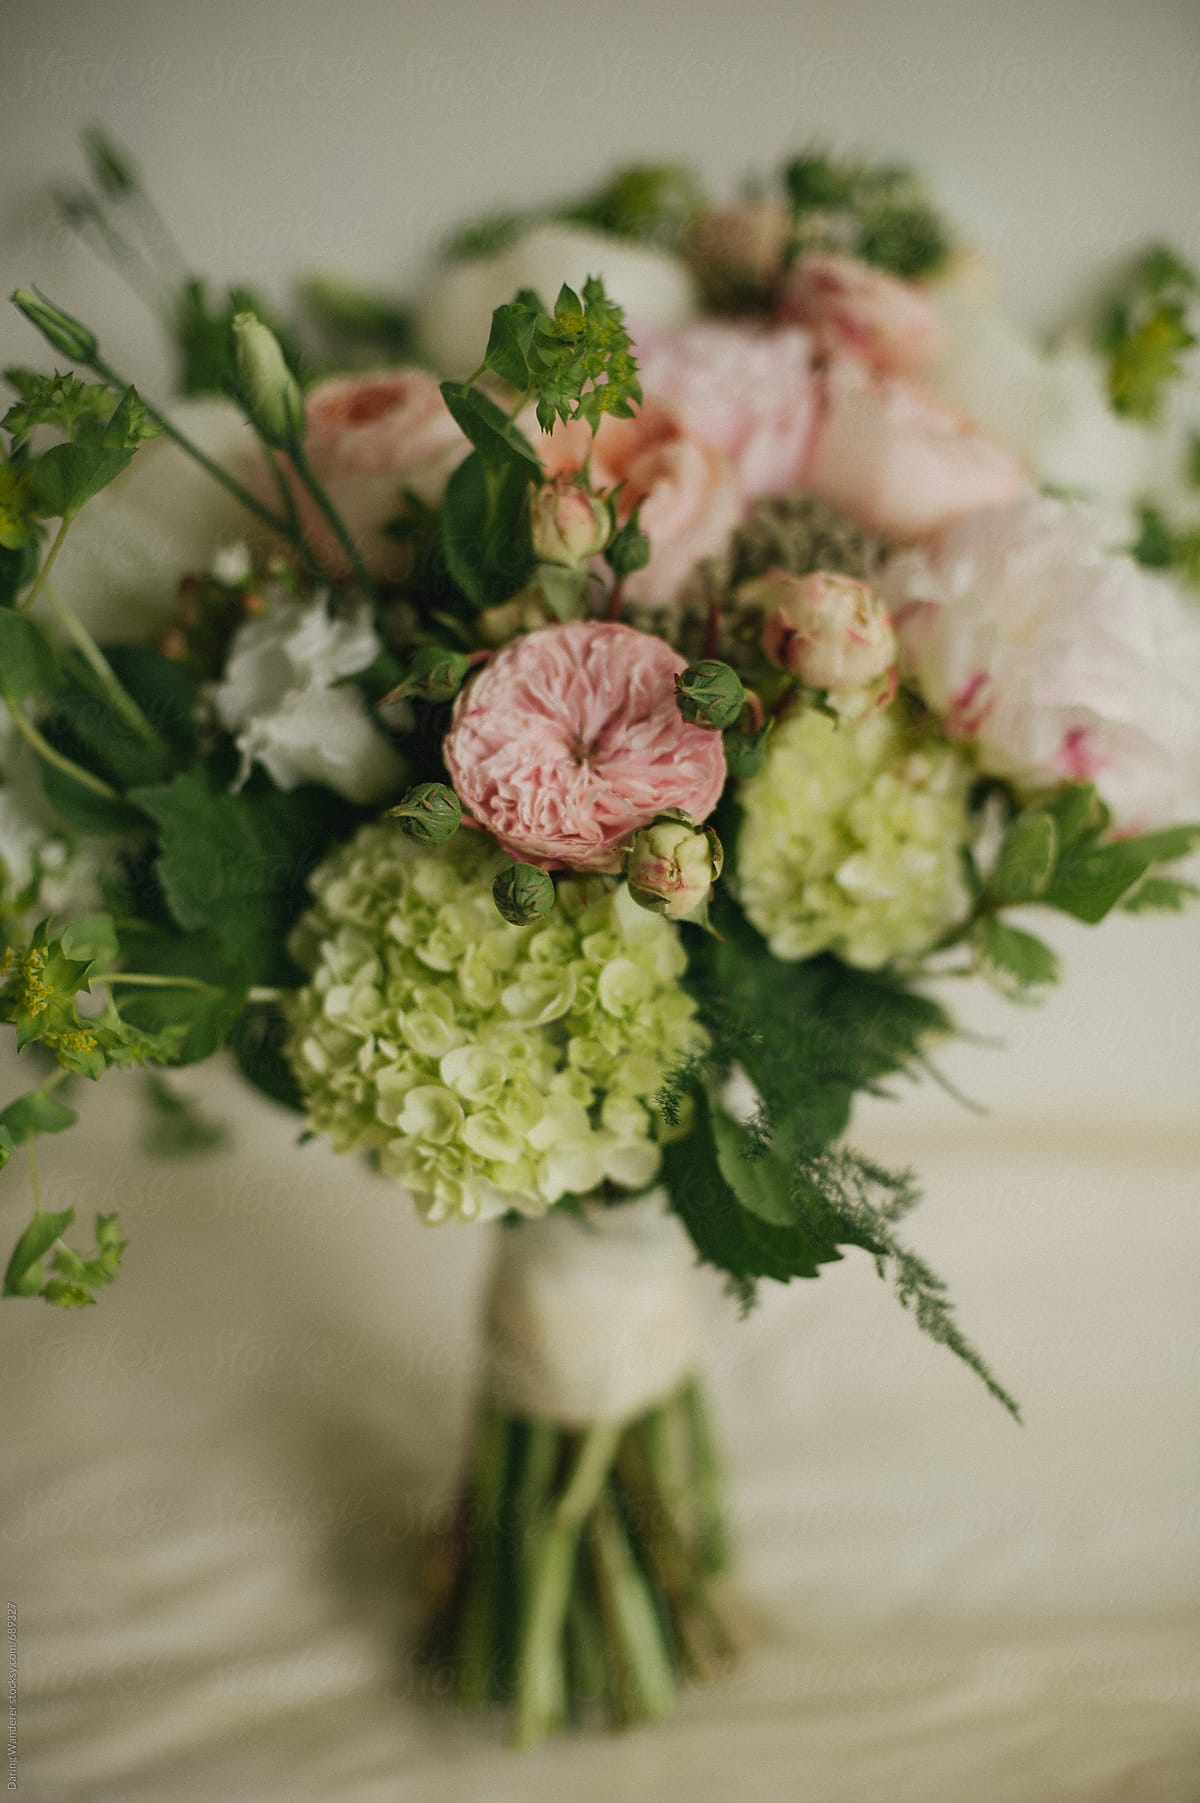 Handmade Blush Pink Garden Rose And Peonies Wedding Bouquet On Artist  Studio Table